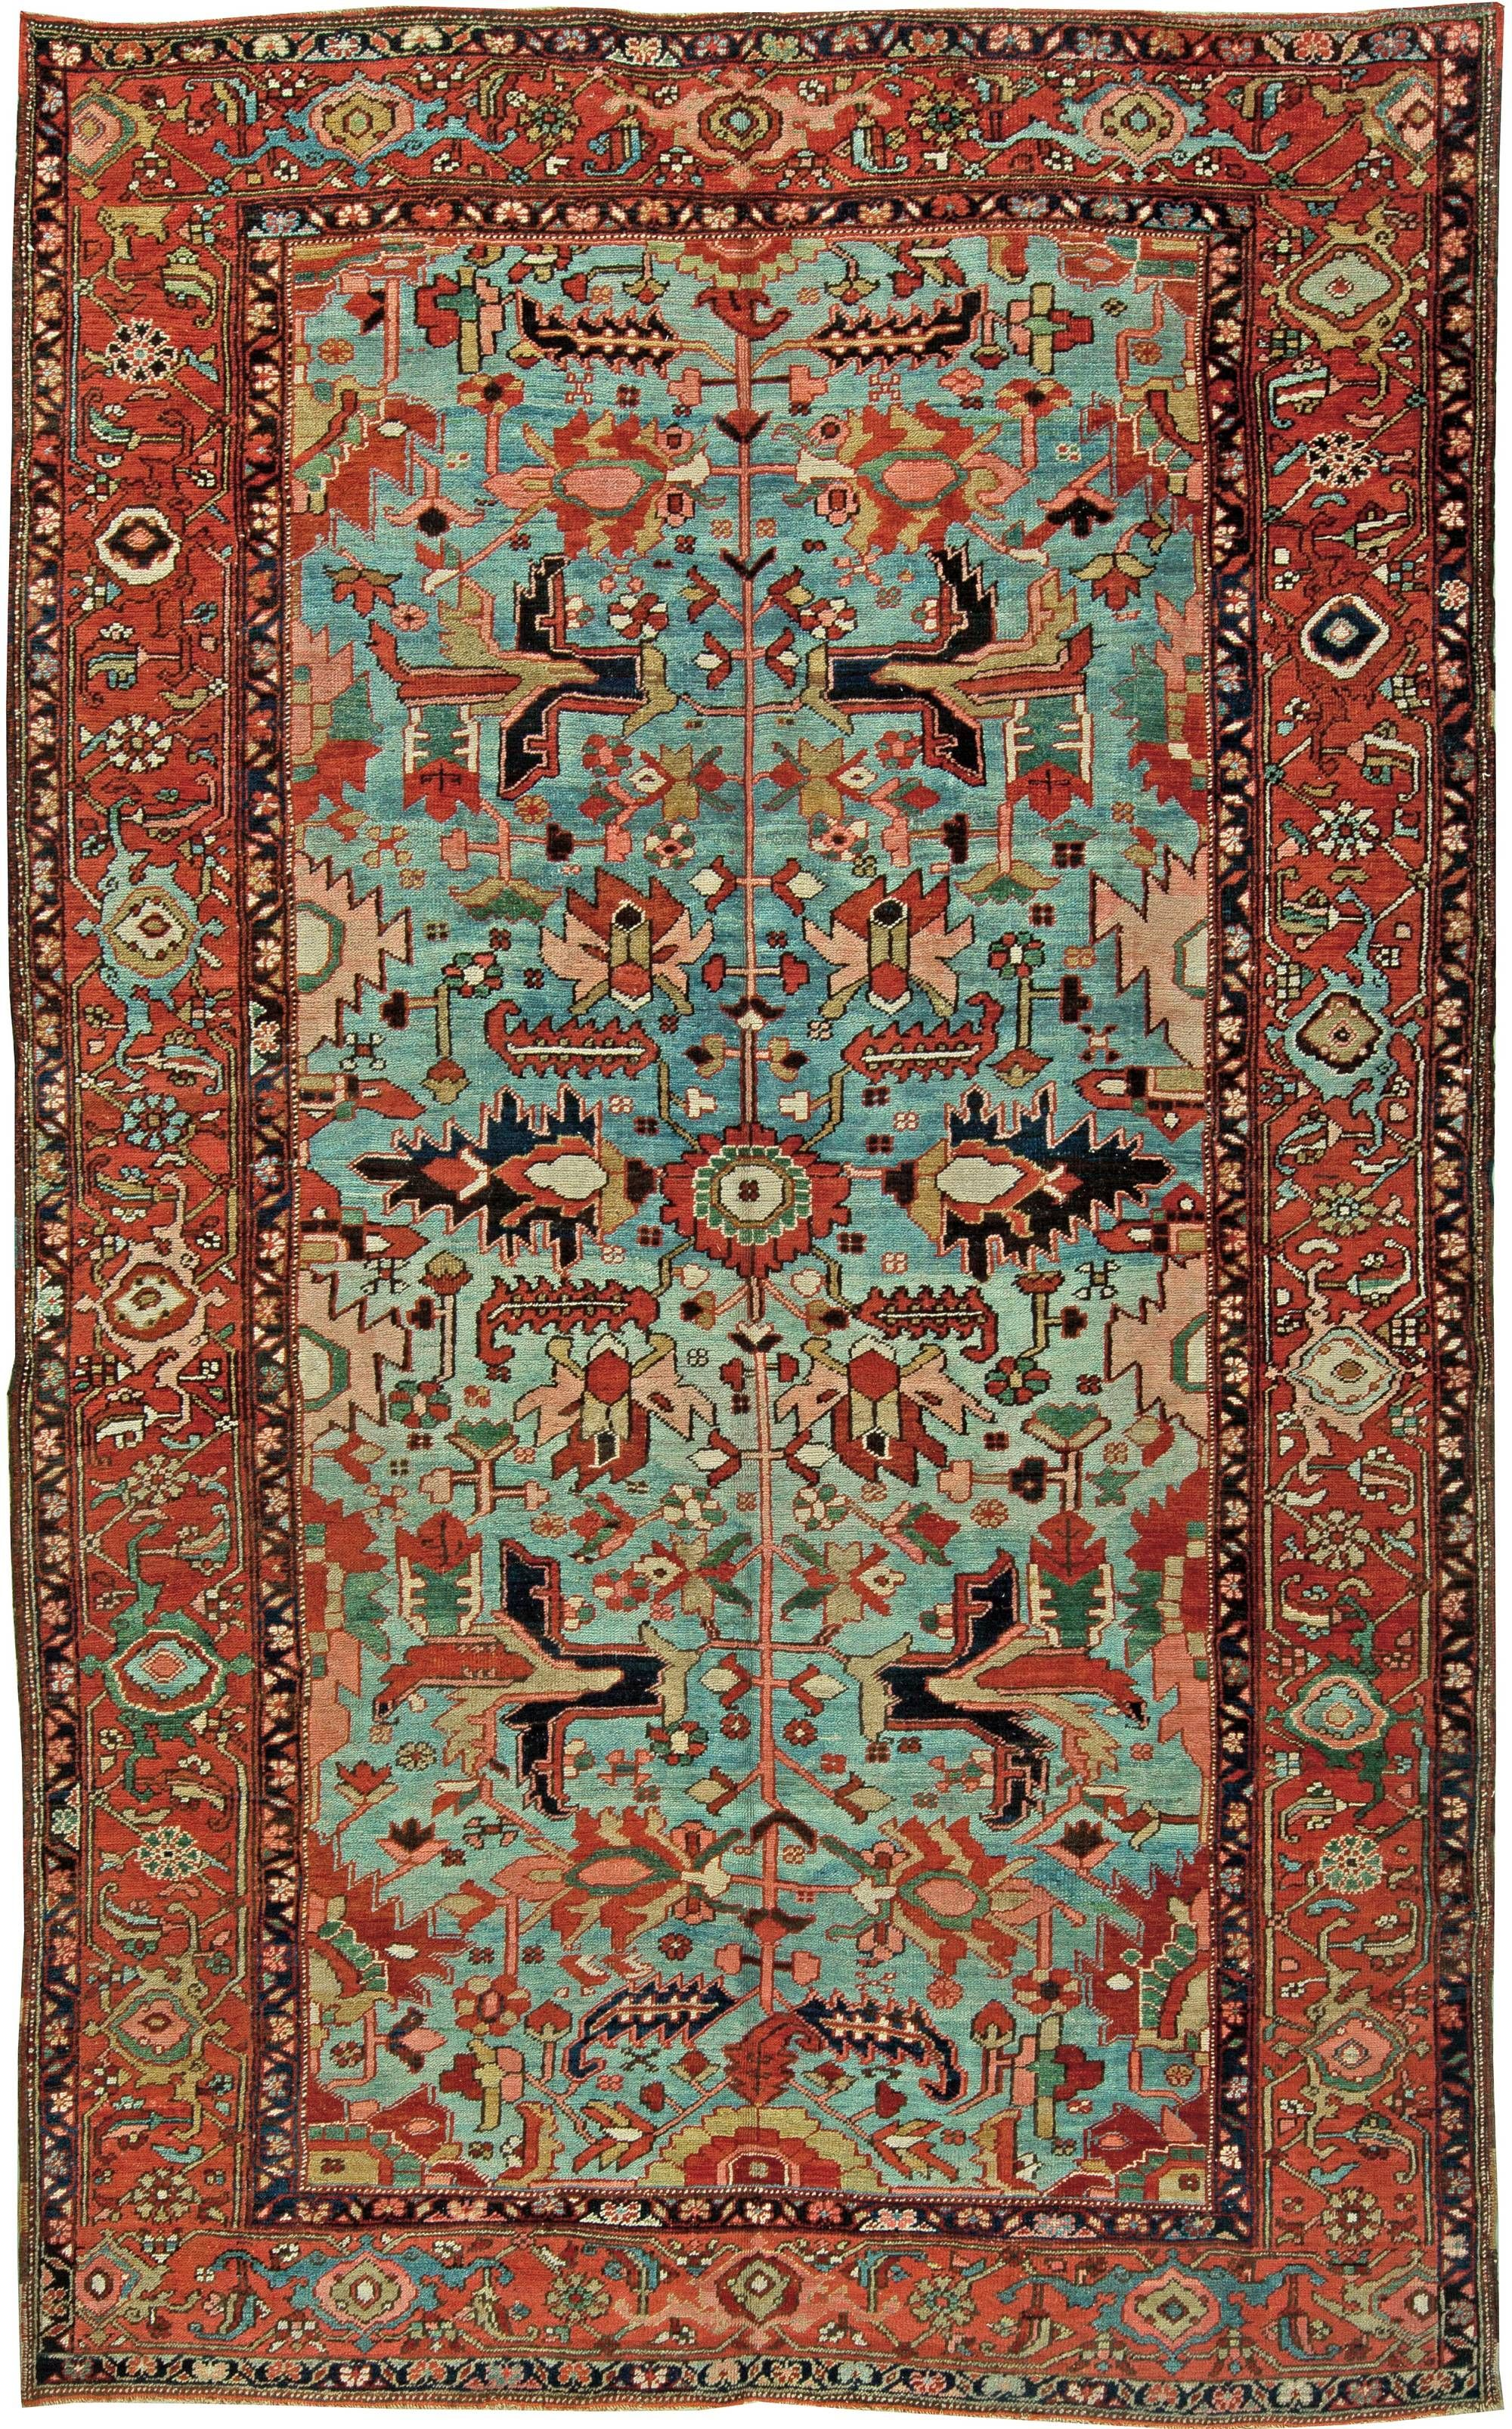 heriz rugs this heriz rug features antique persian rug patterns - by doris leslie blau YMPRLOQ